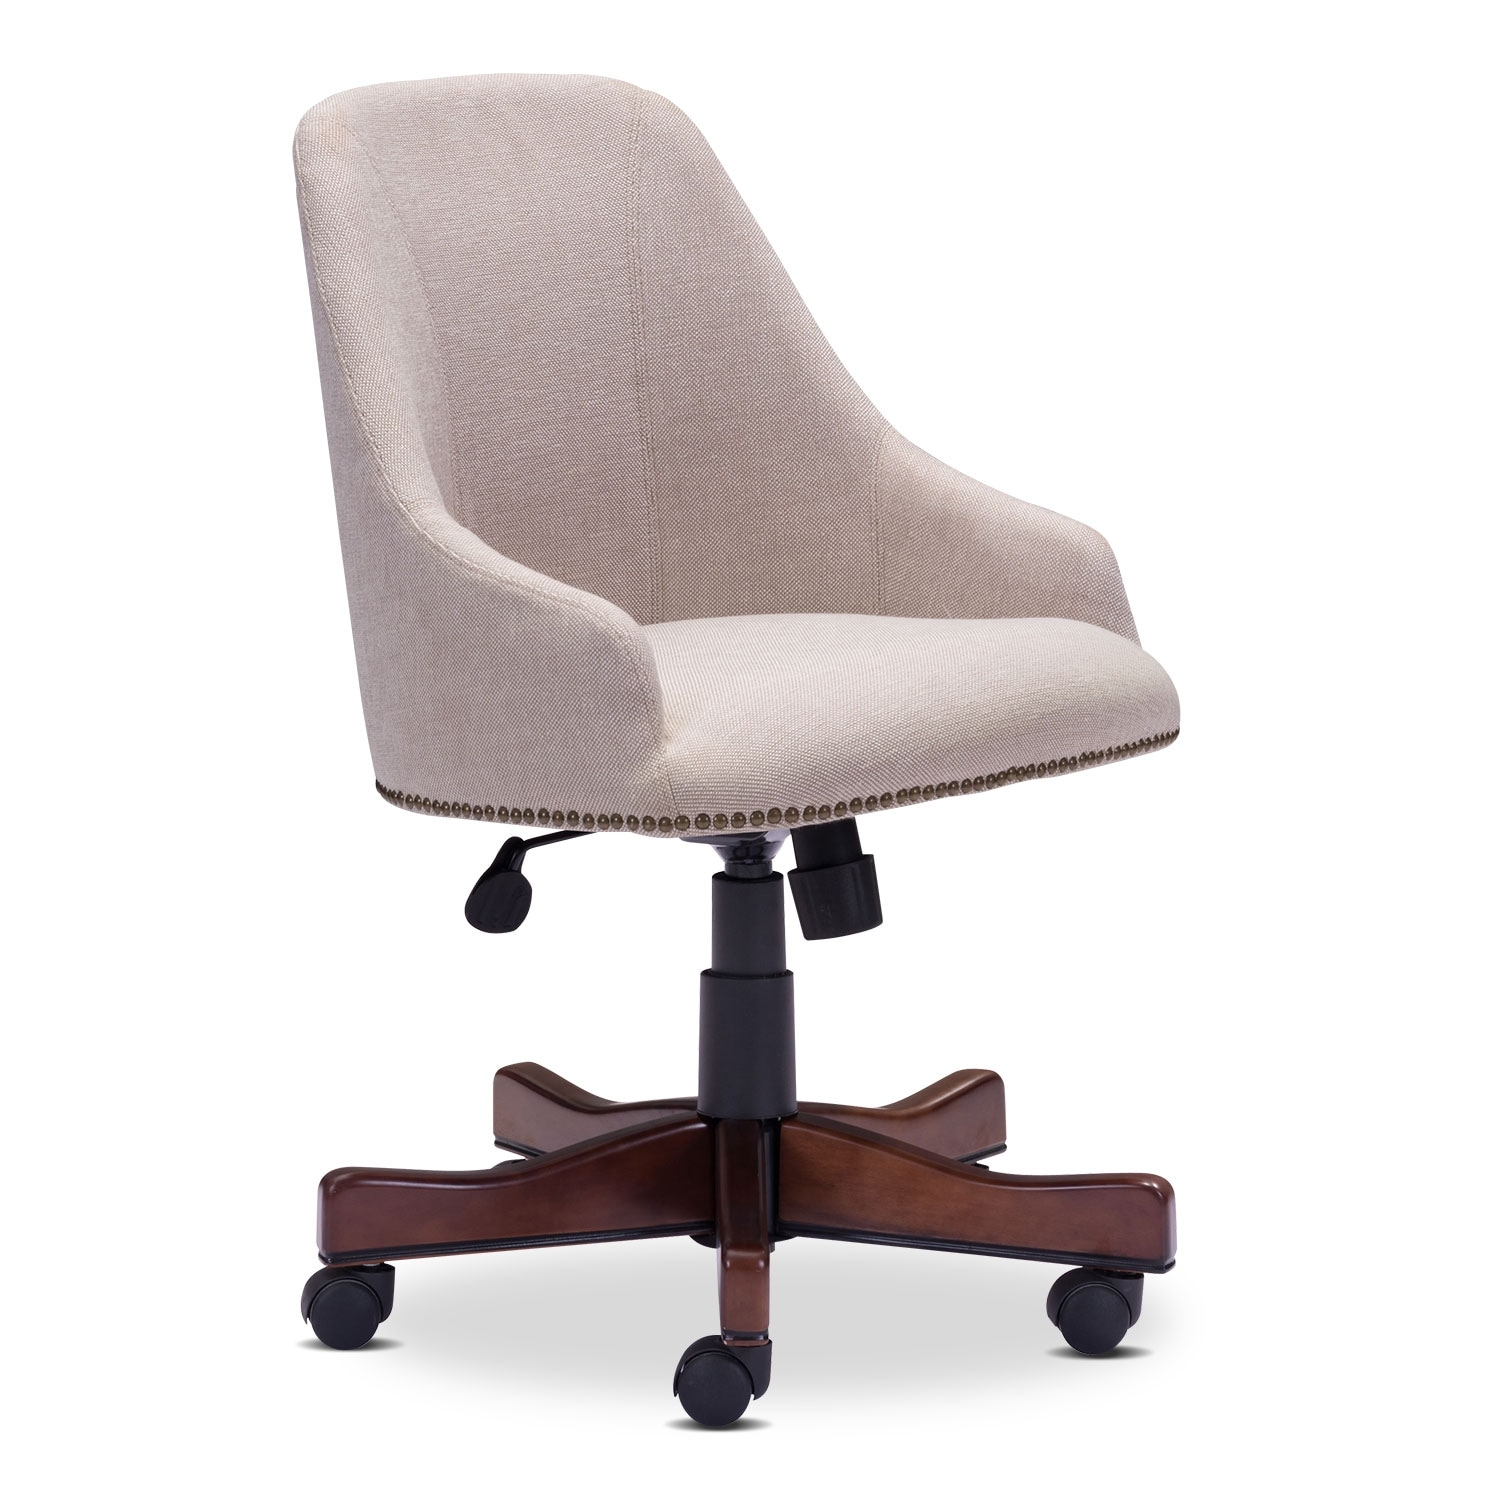 Saddle Office Arm Chair Beige American Signature Furniture